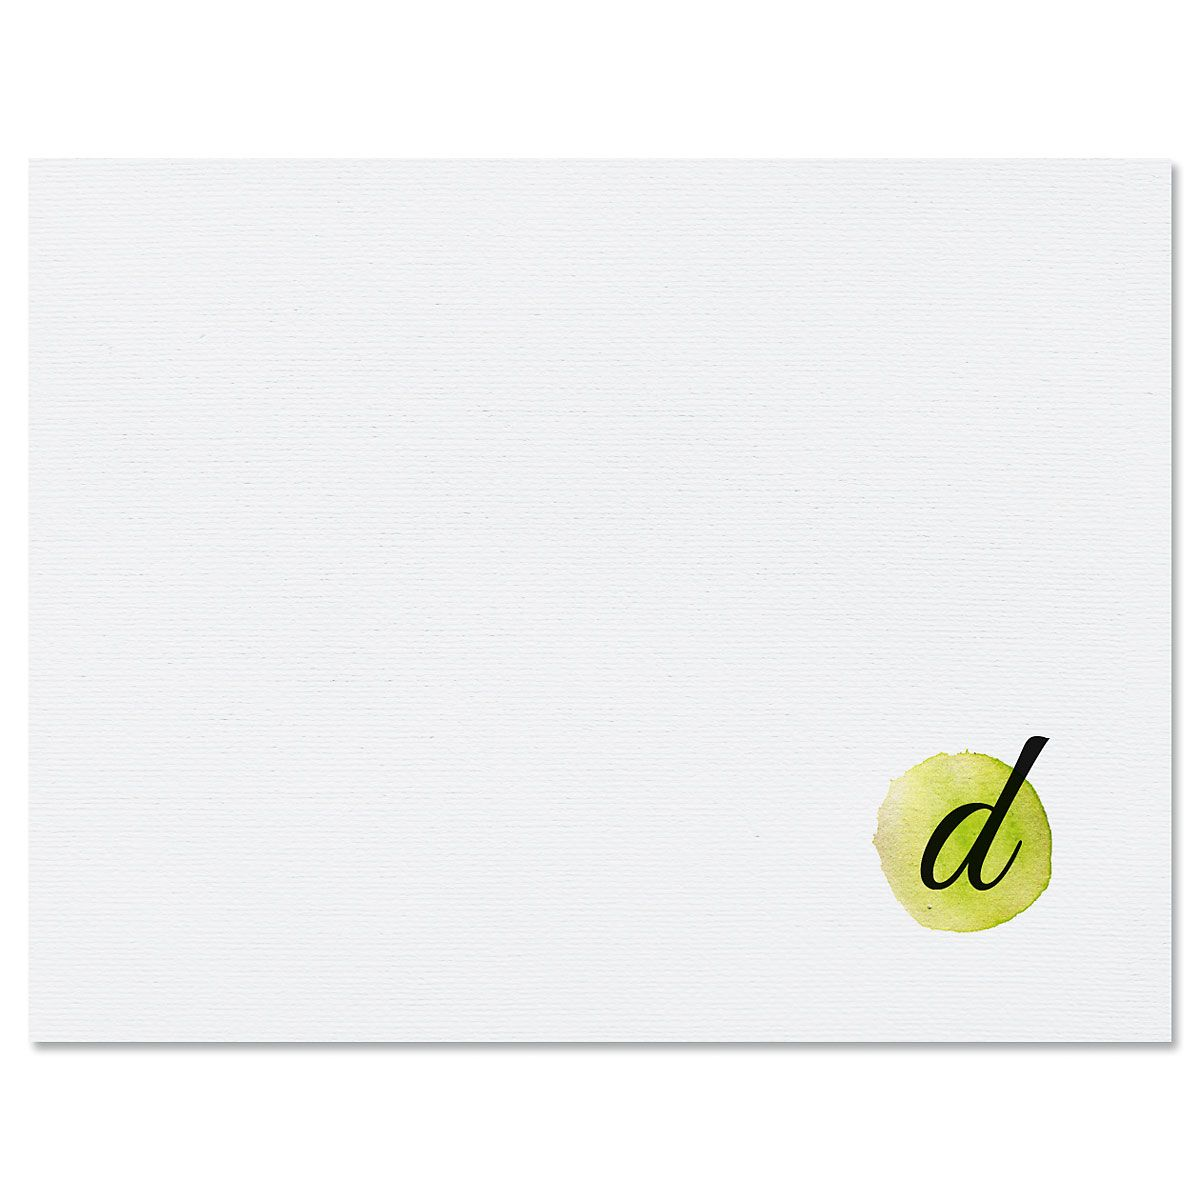 Watercolor Initial Personalized Note Cards